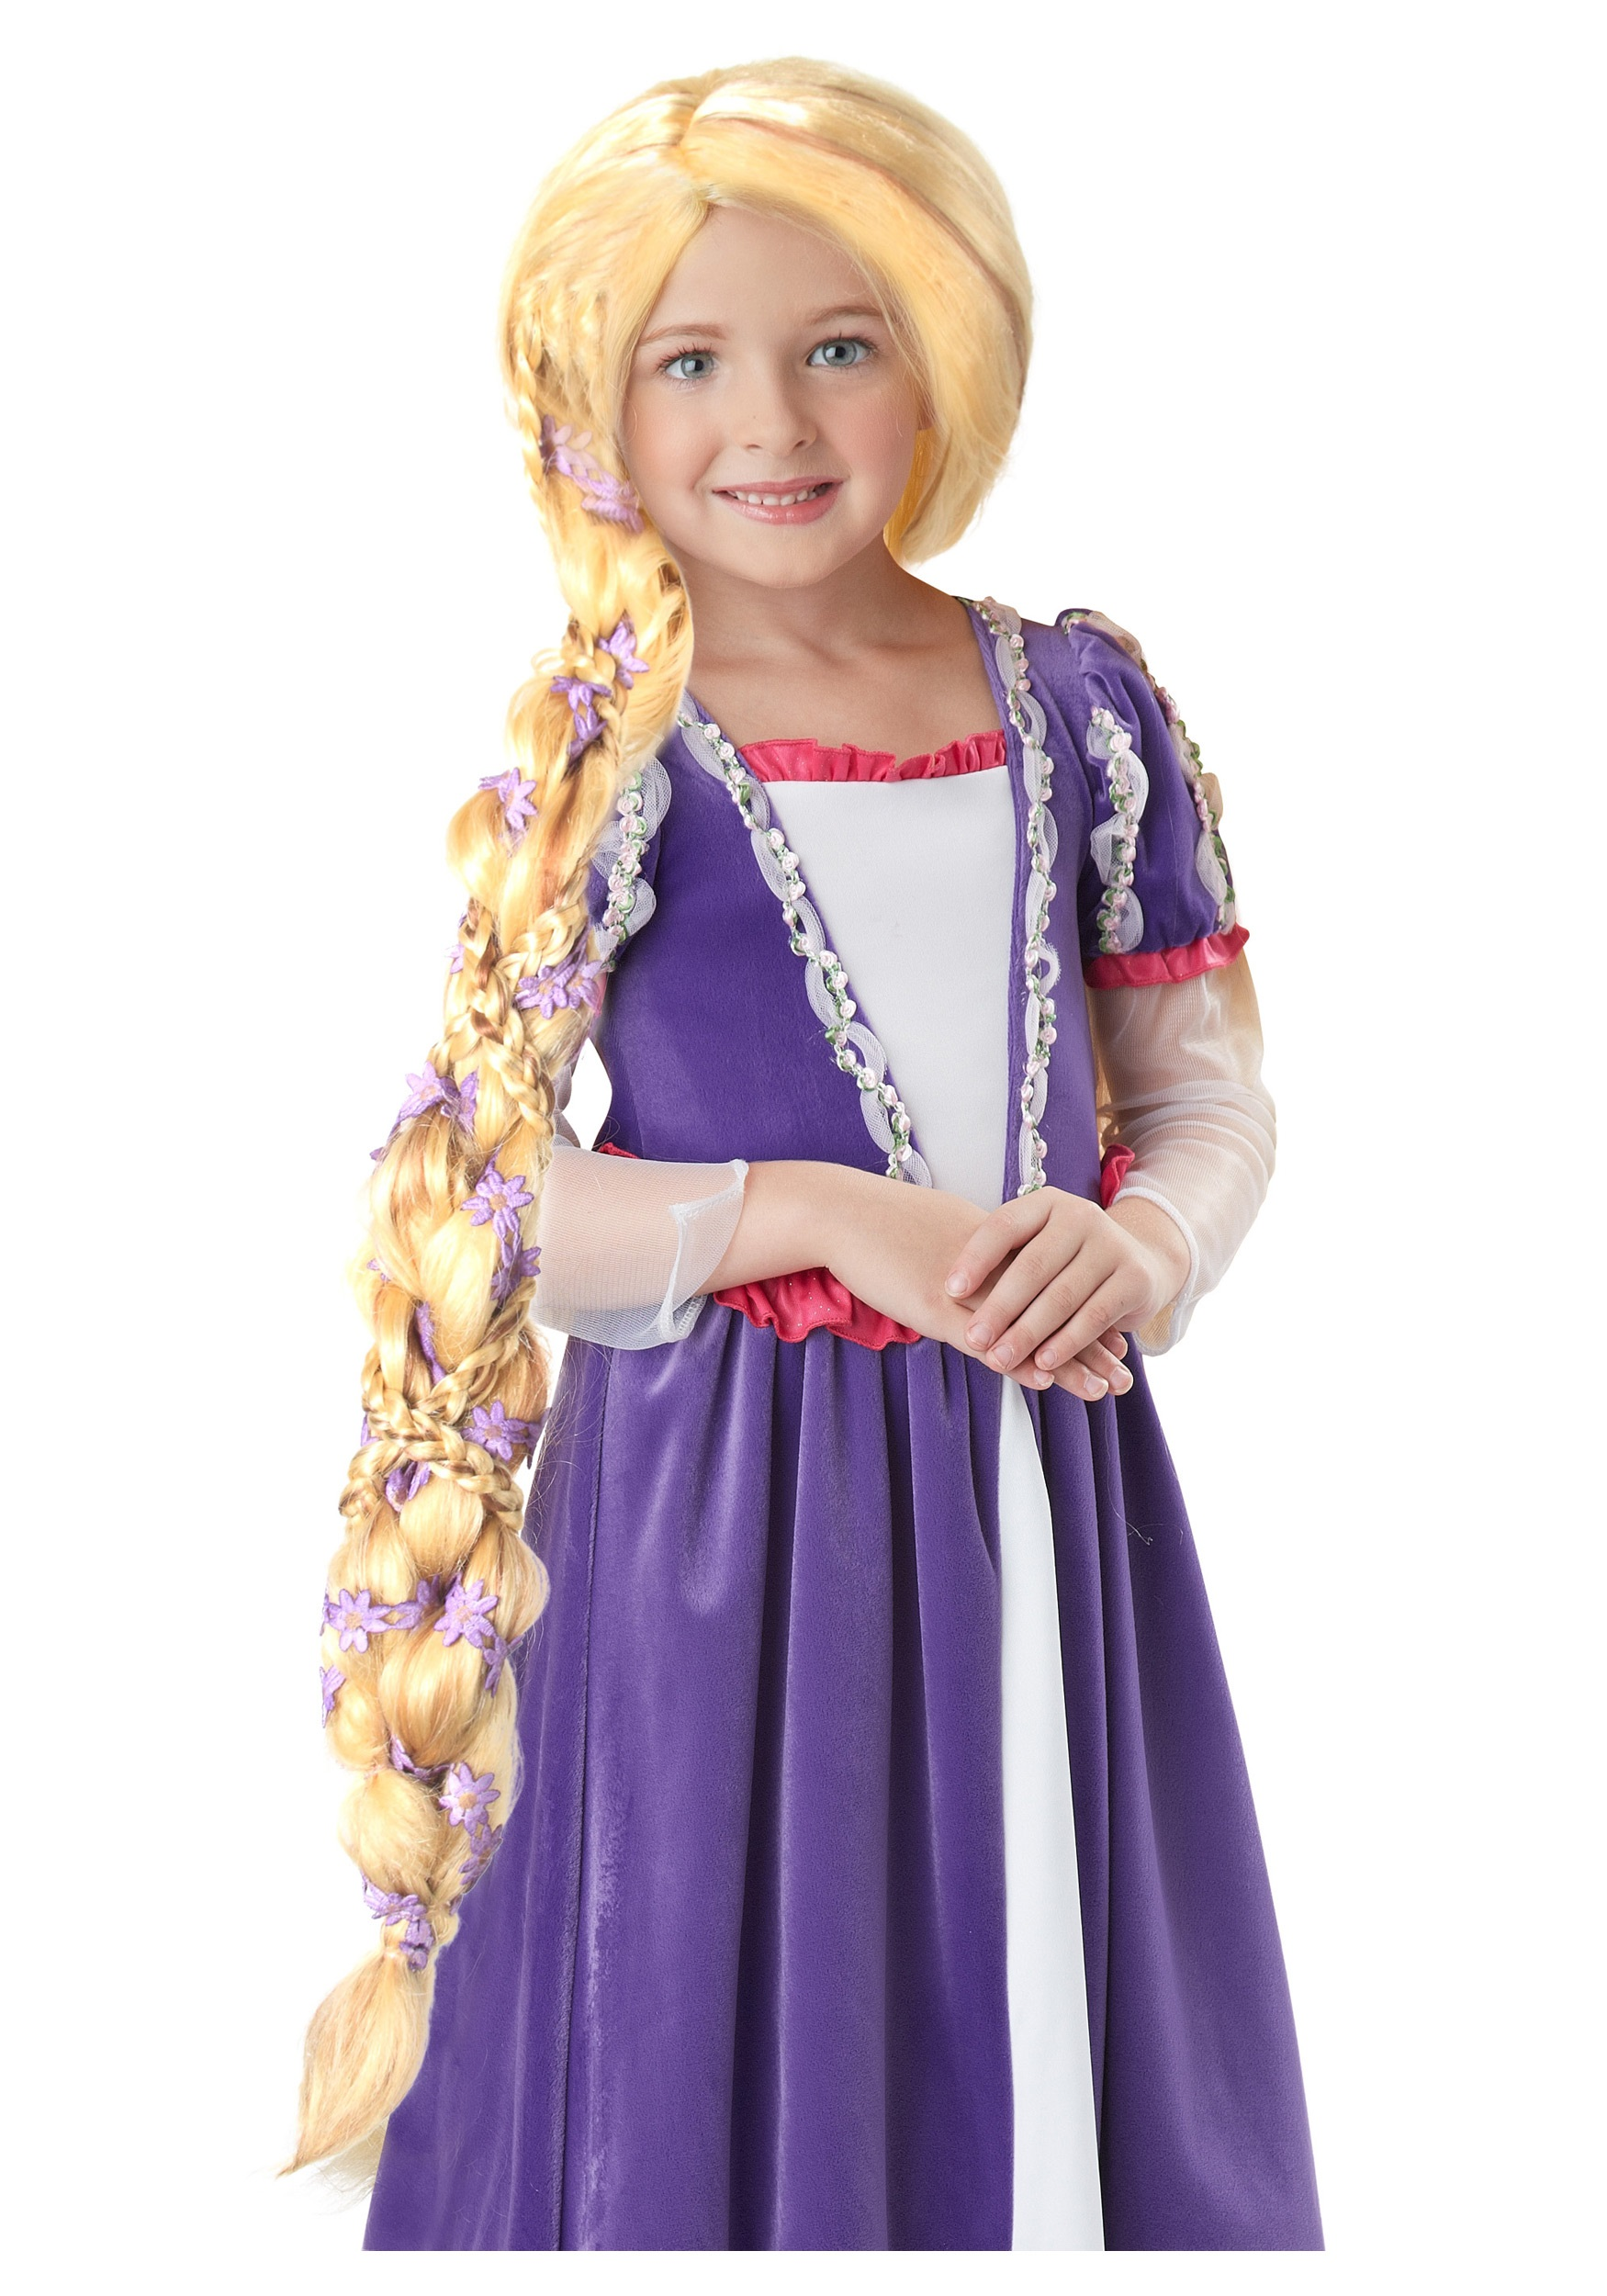 Long Blonde Hair Rapunzel Wig